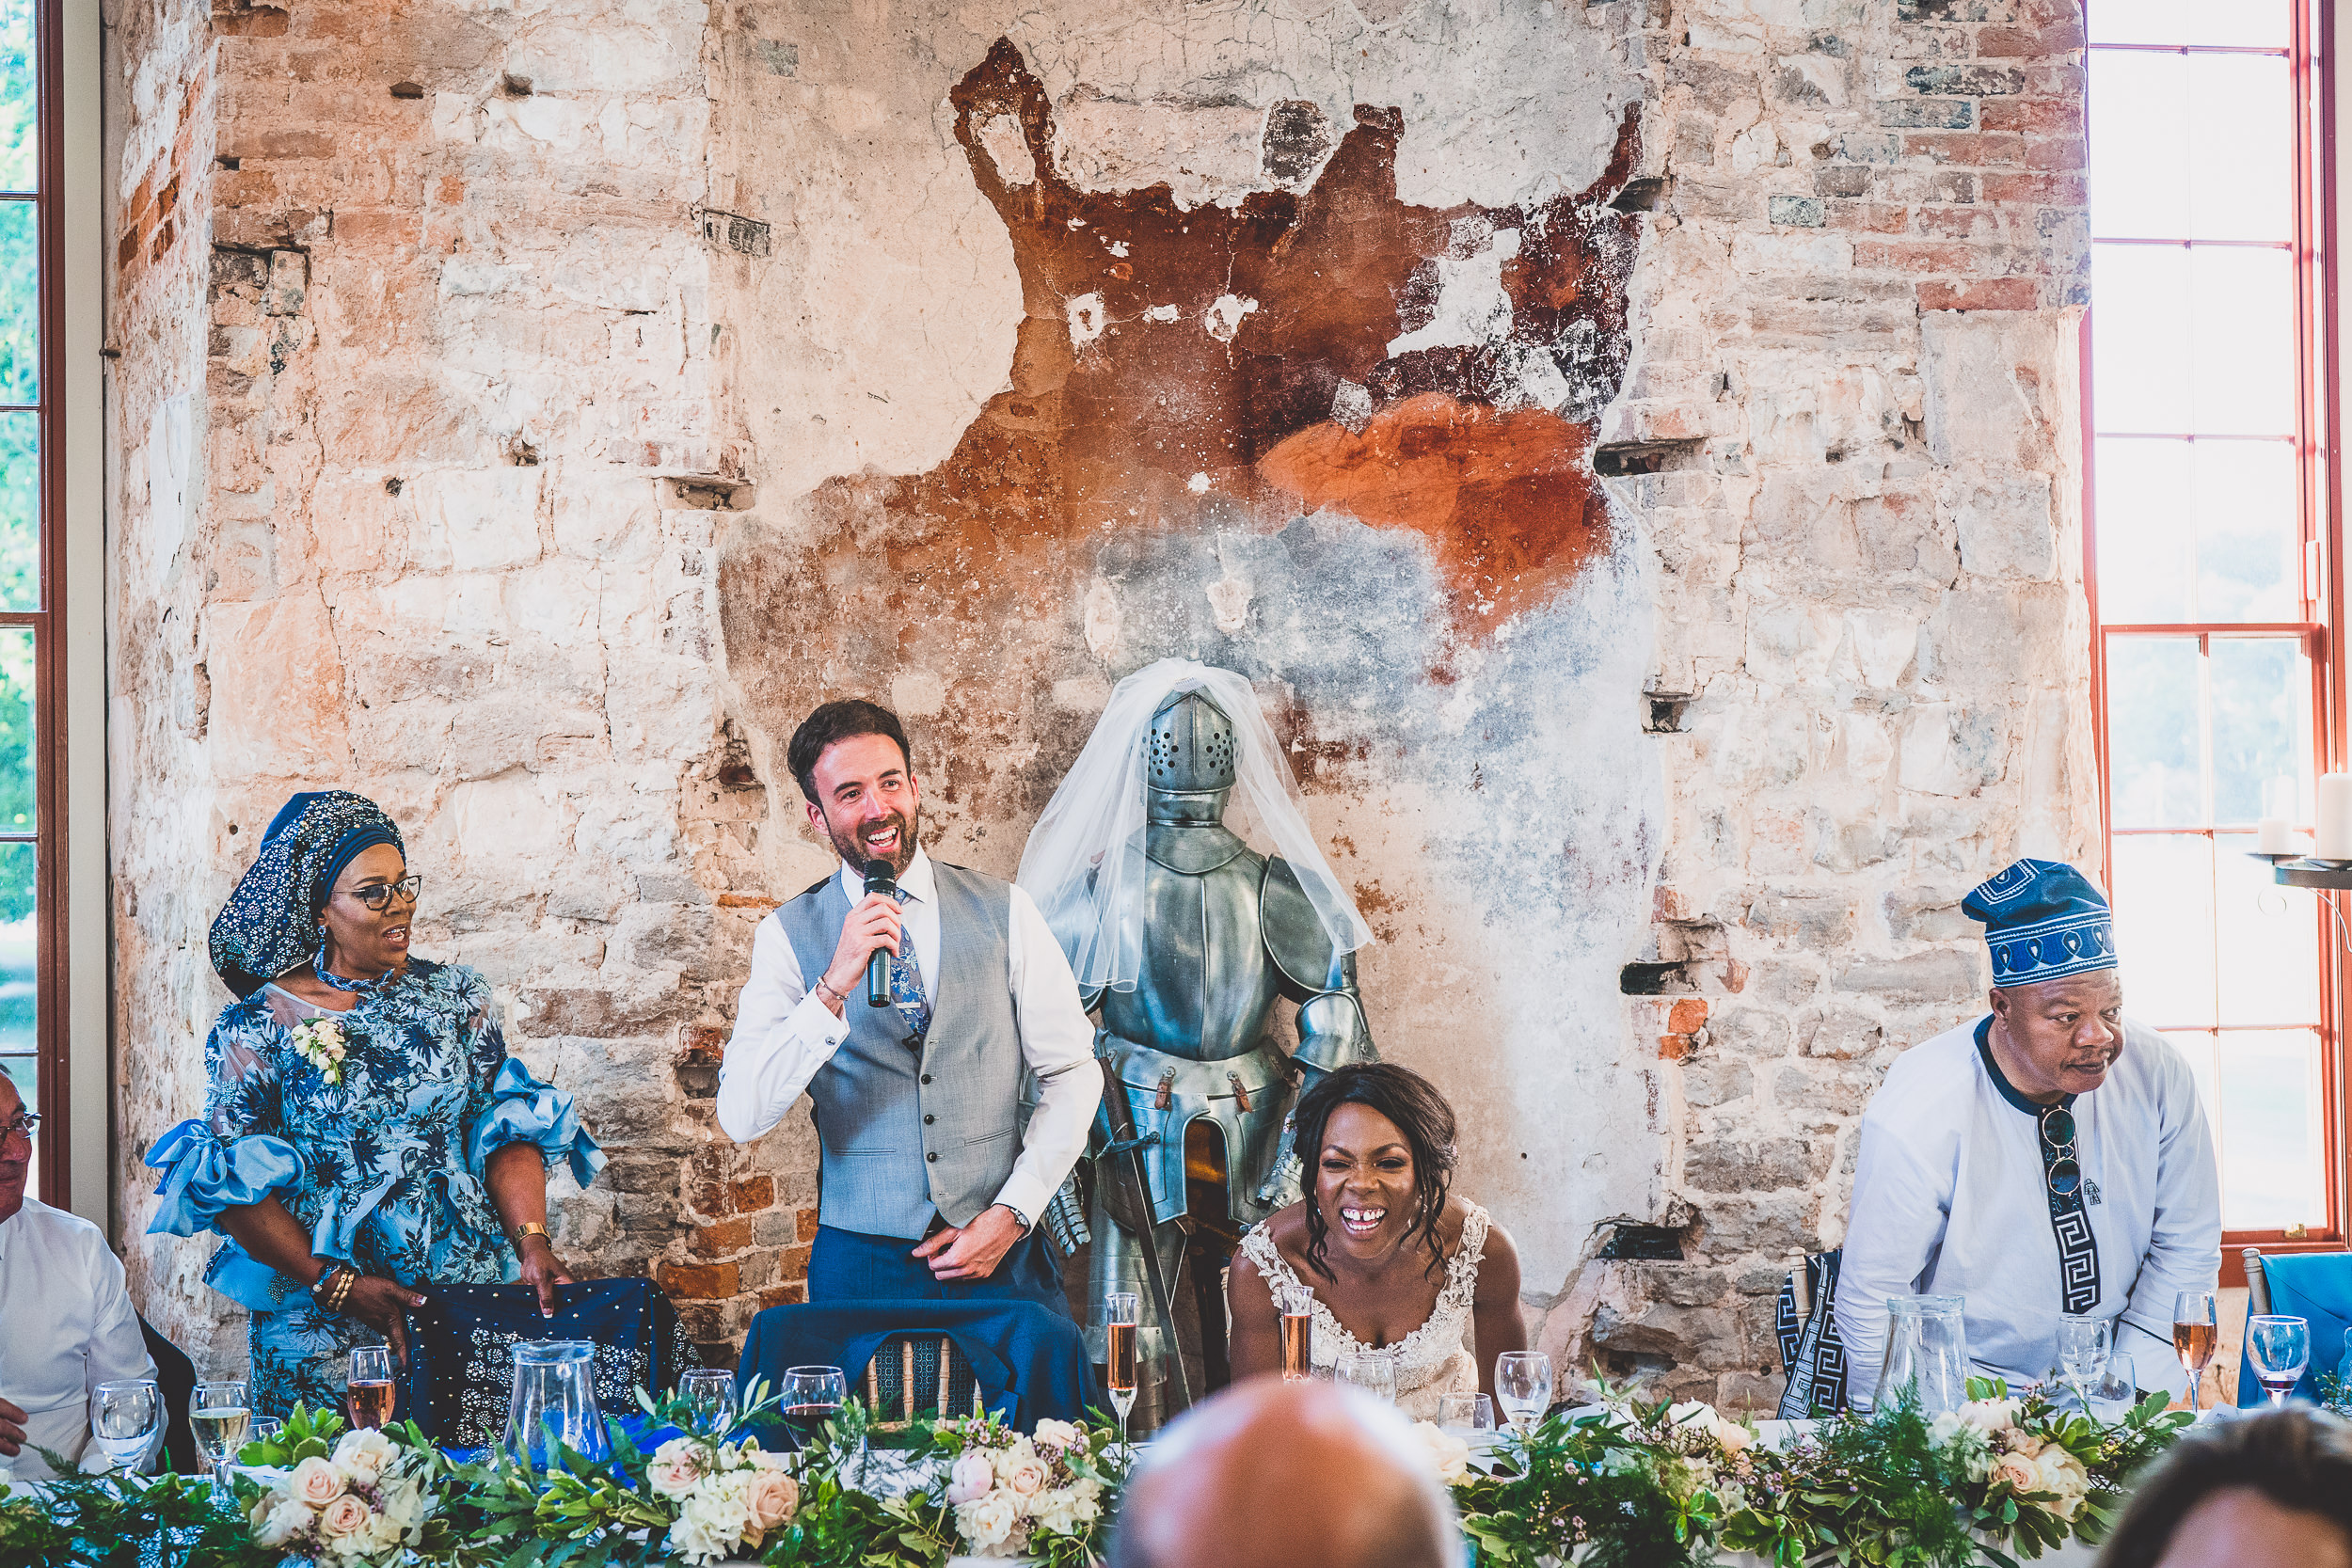 Lulworth Castle Wedding Photography | Amina & David Amina David ss 075